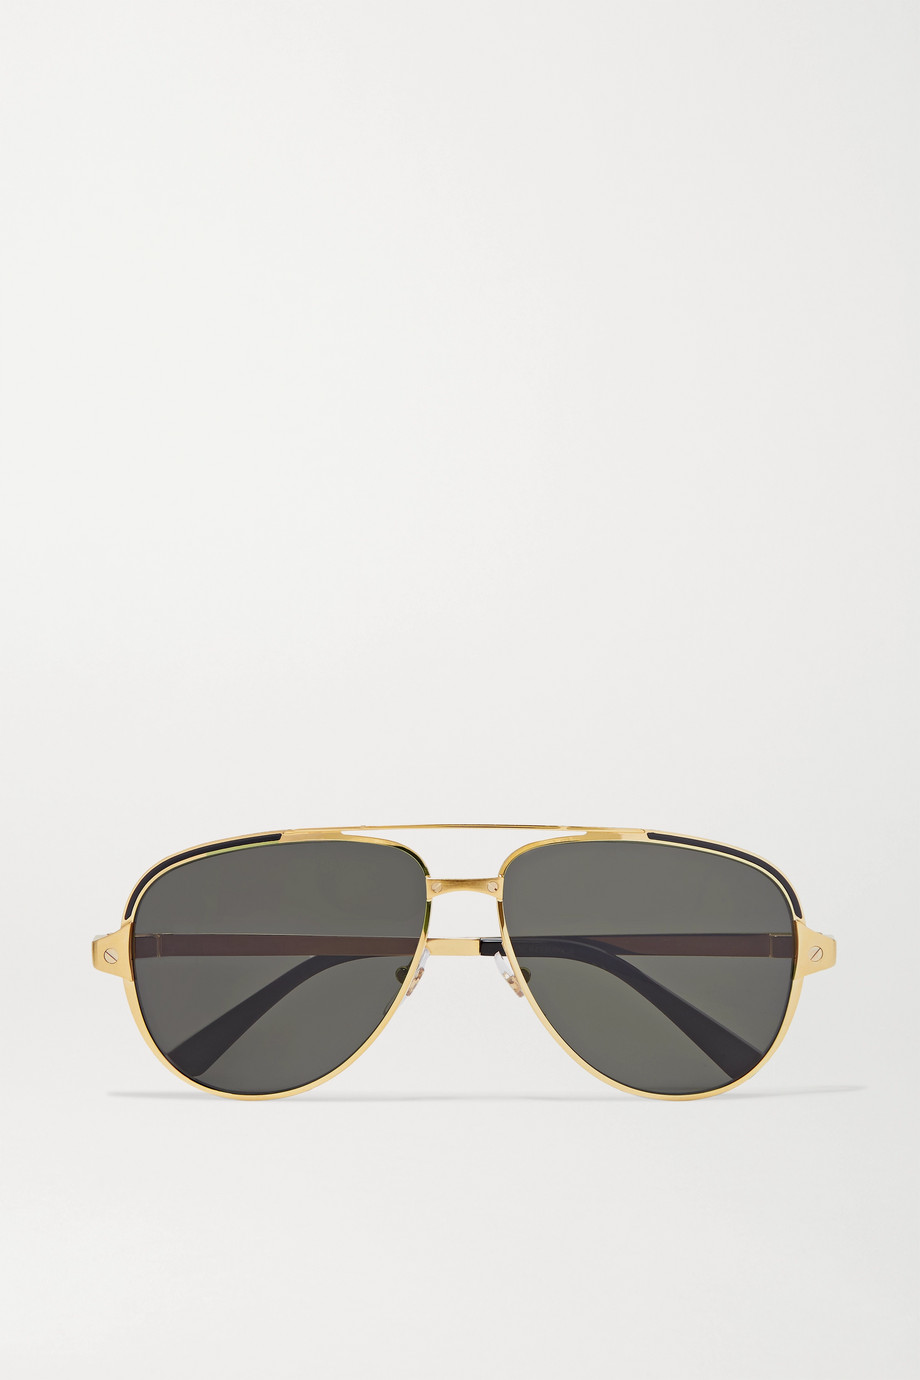 Cartier Eyewear Santos aviator-style gold-tone and acetate sunglasses